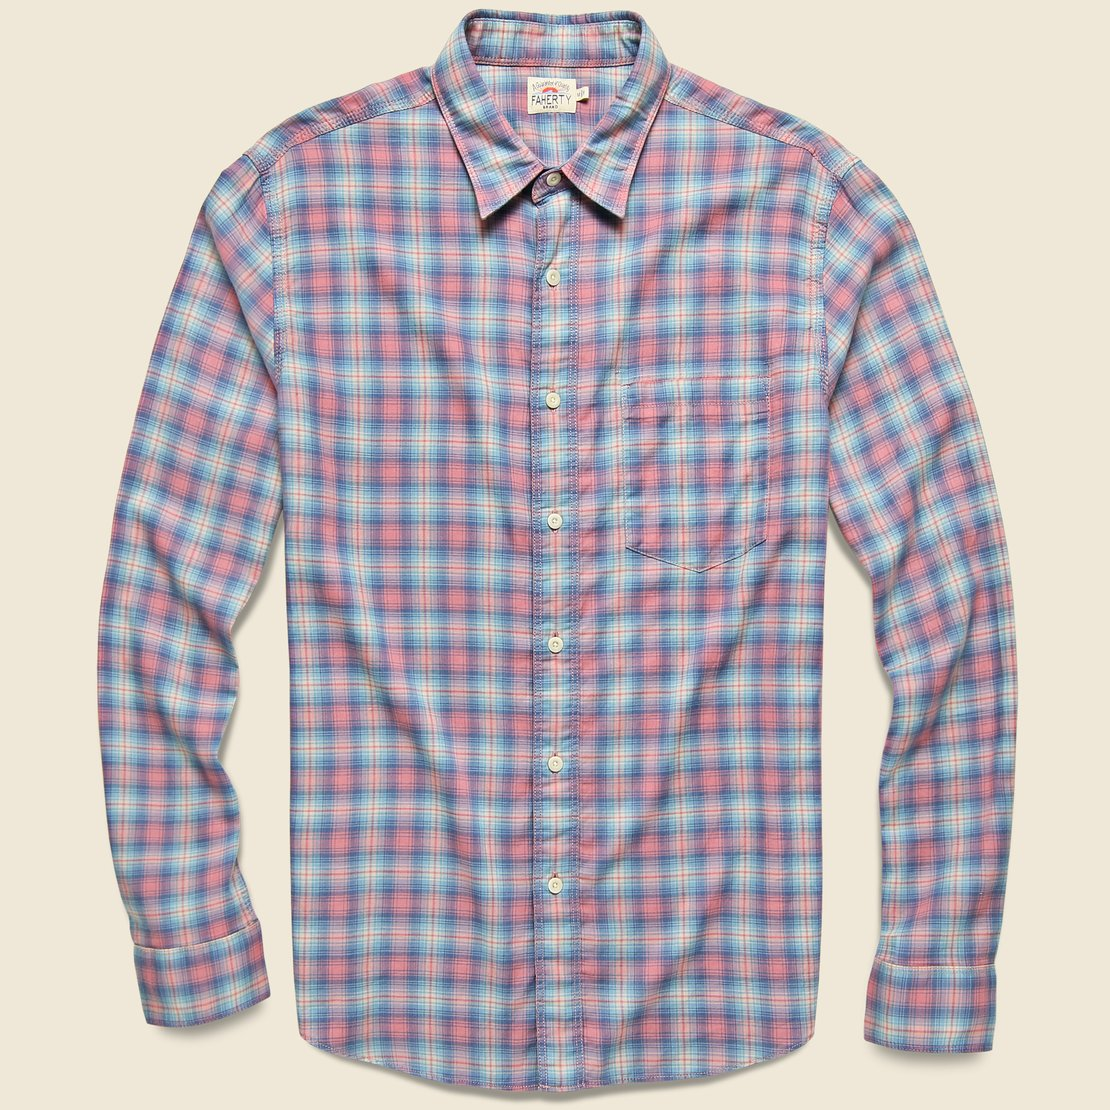 Faherty Everyday Shirt - Summerland Plaid